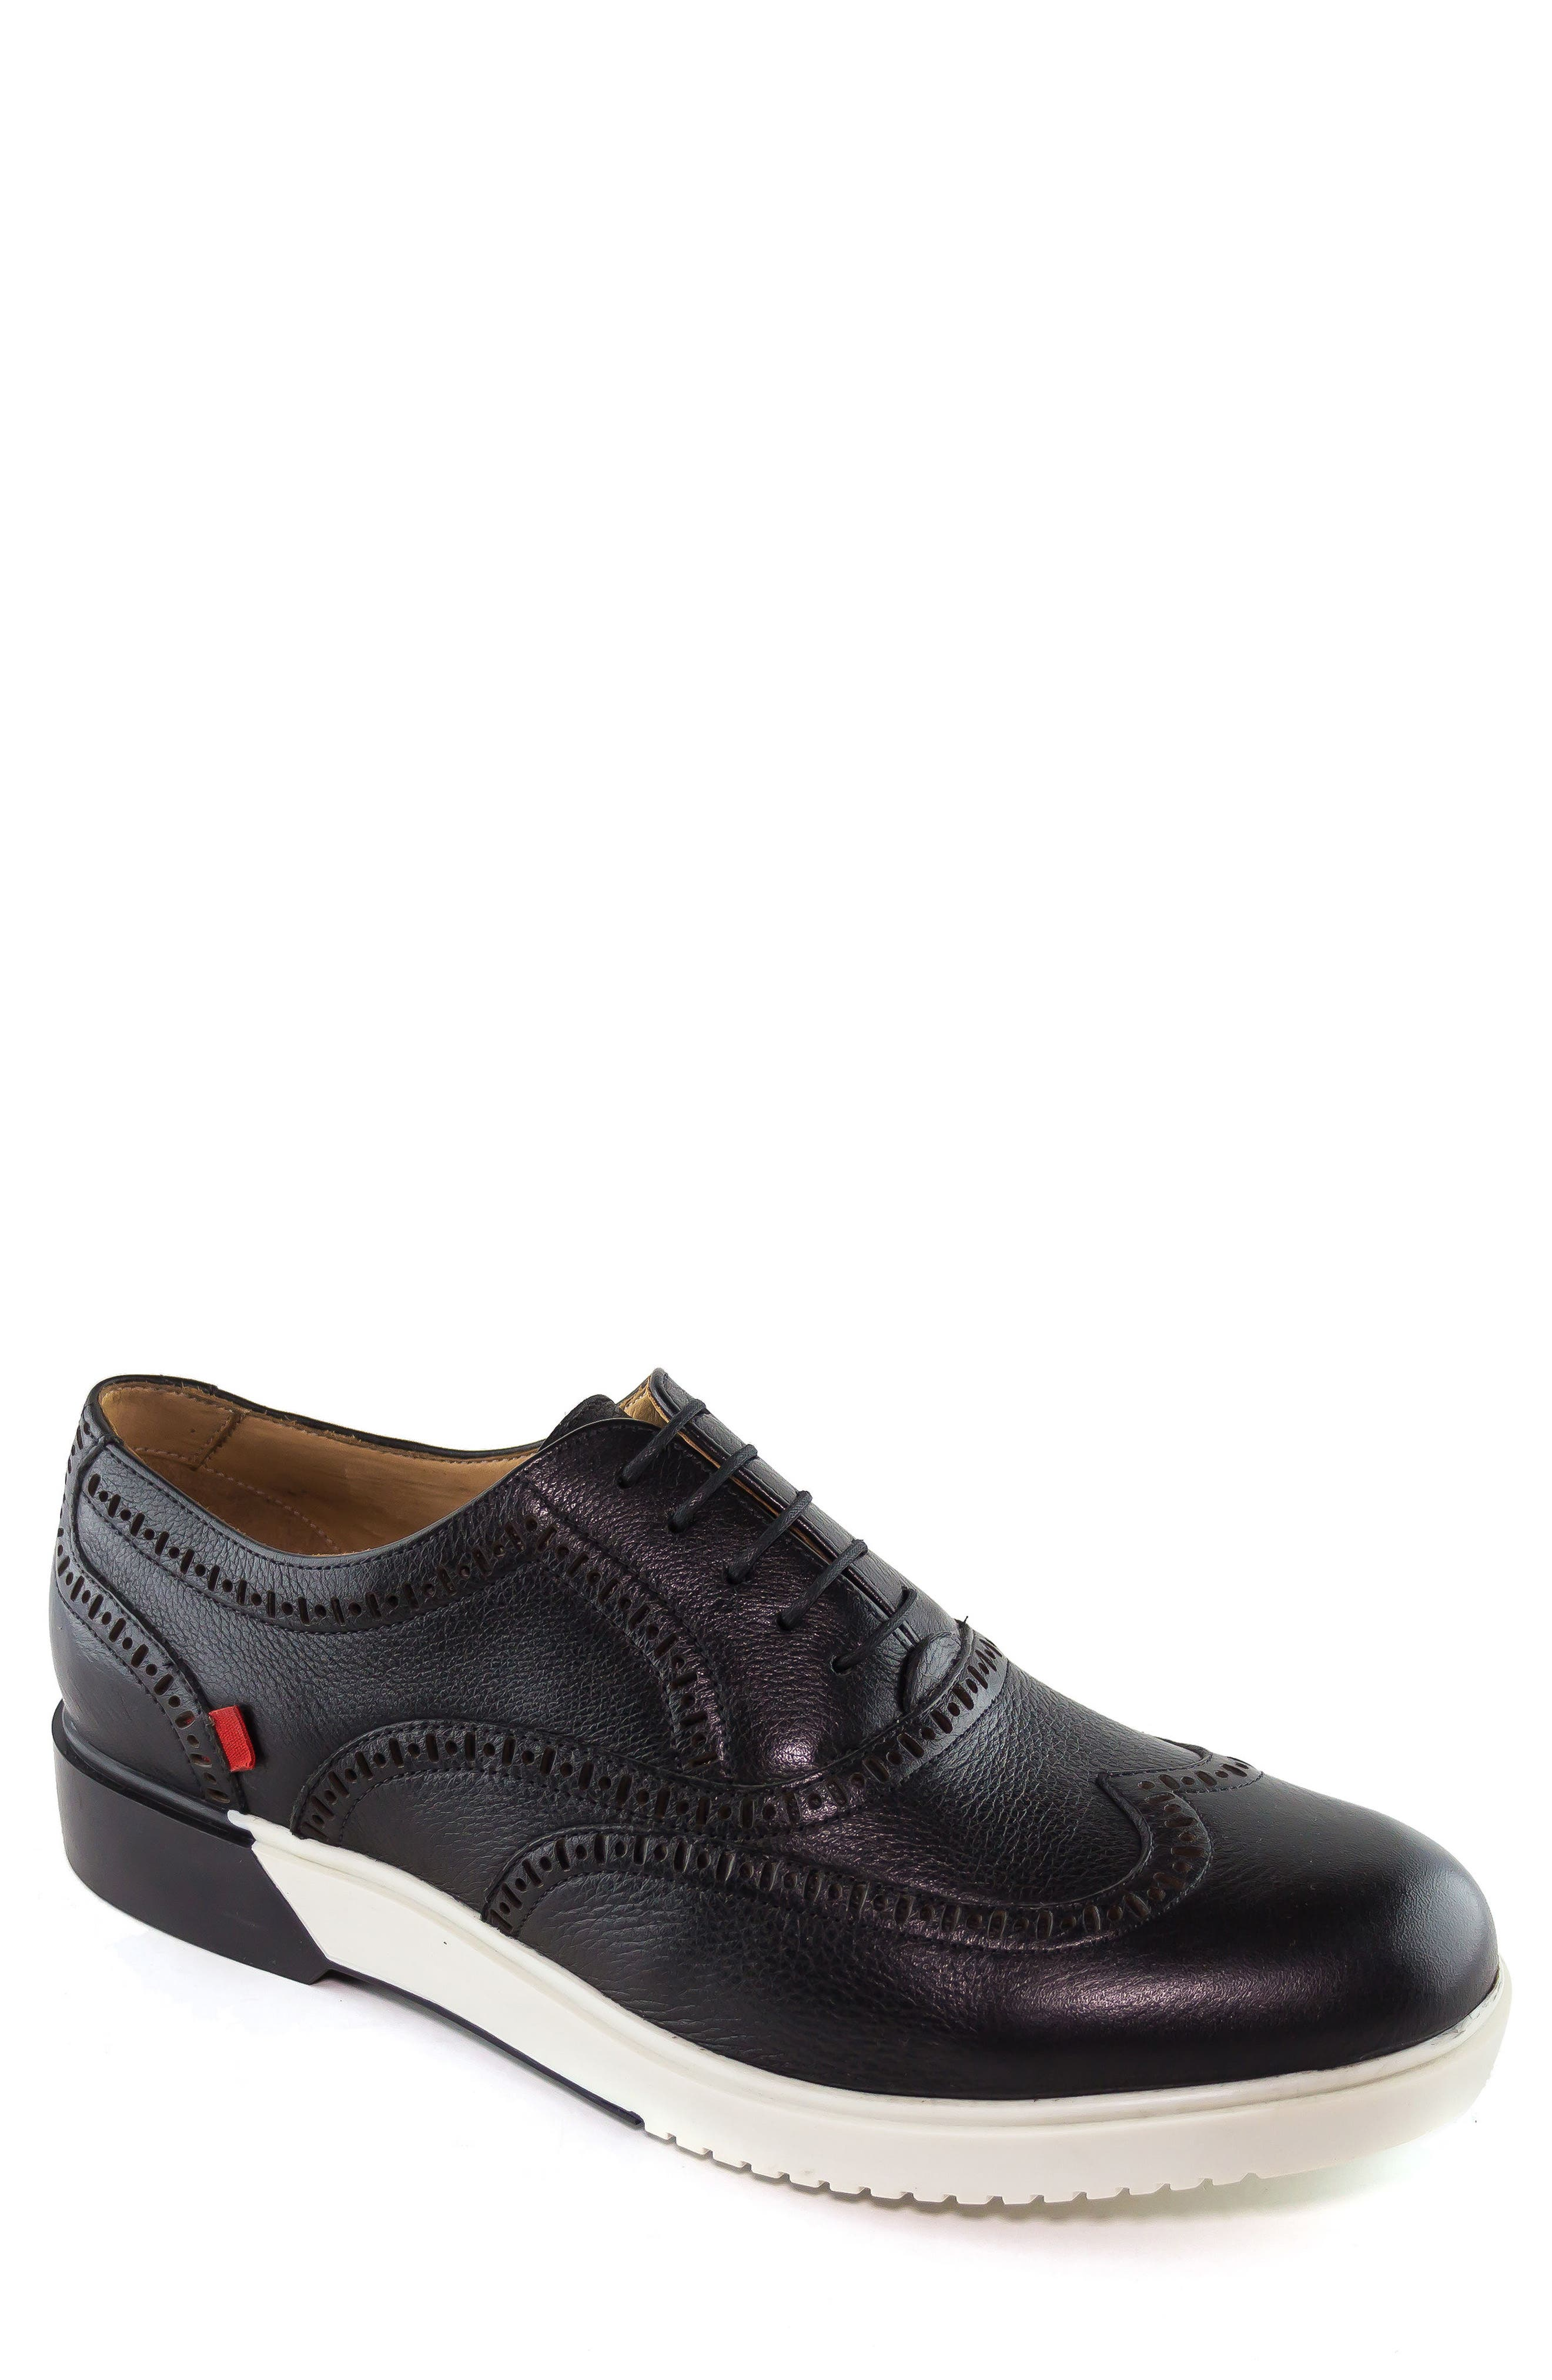 5th Ave Wingtip Sneaker,                             Main thumbnail 1, color,